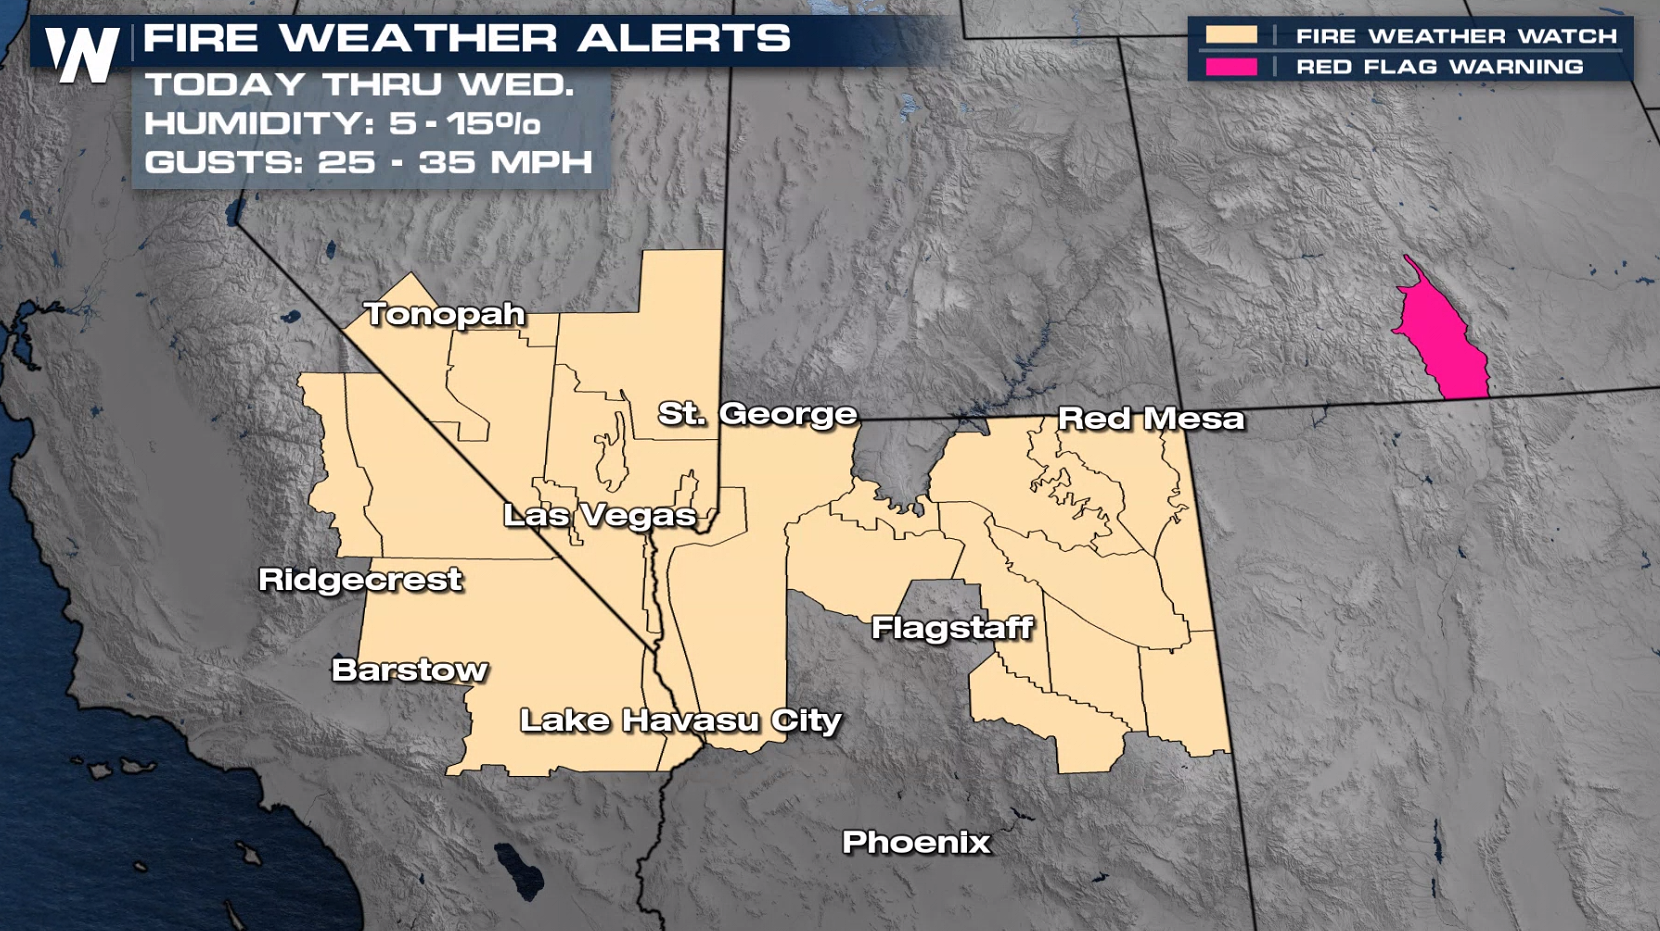 High Fire Danger Continues in the Southwest